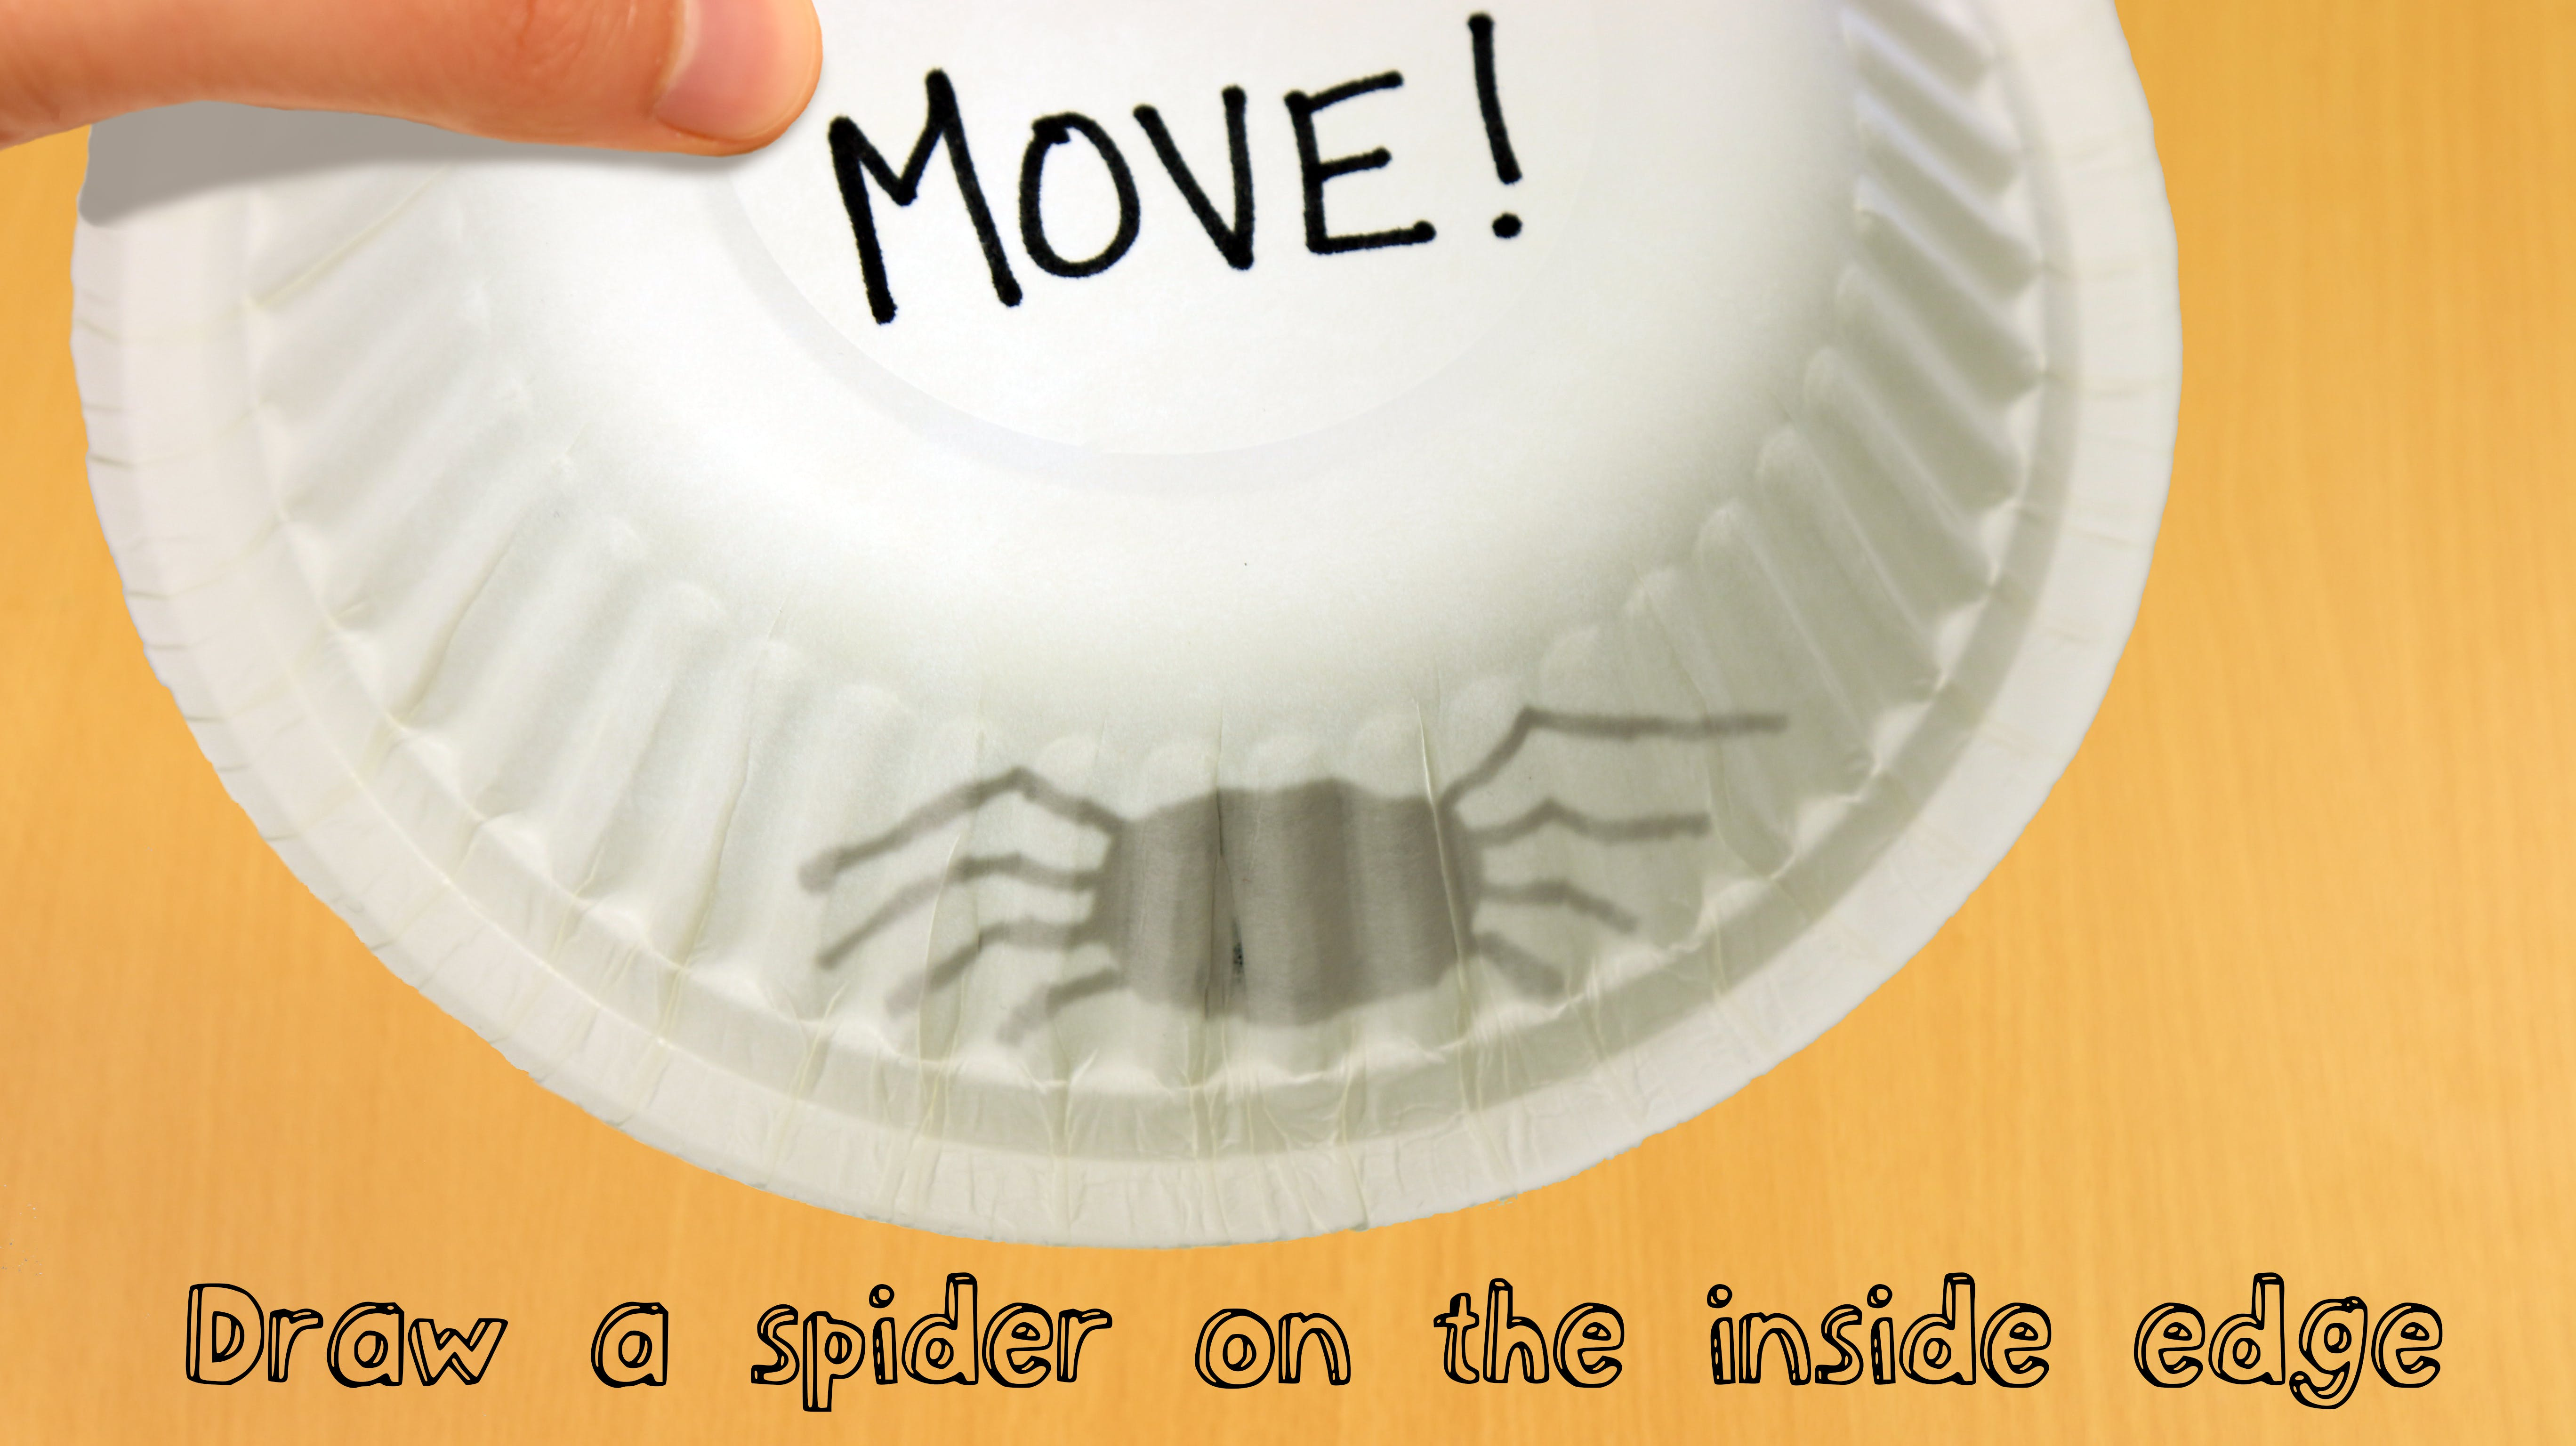 Using your felt tip pen, draw a spider inside the bowl, so that it looks like a shadow from the outside.